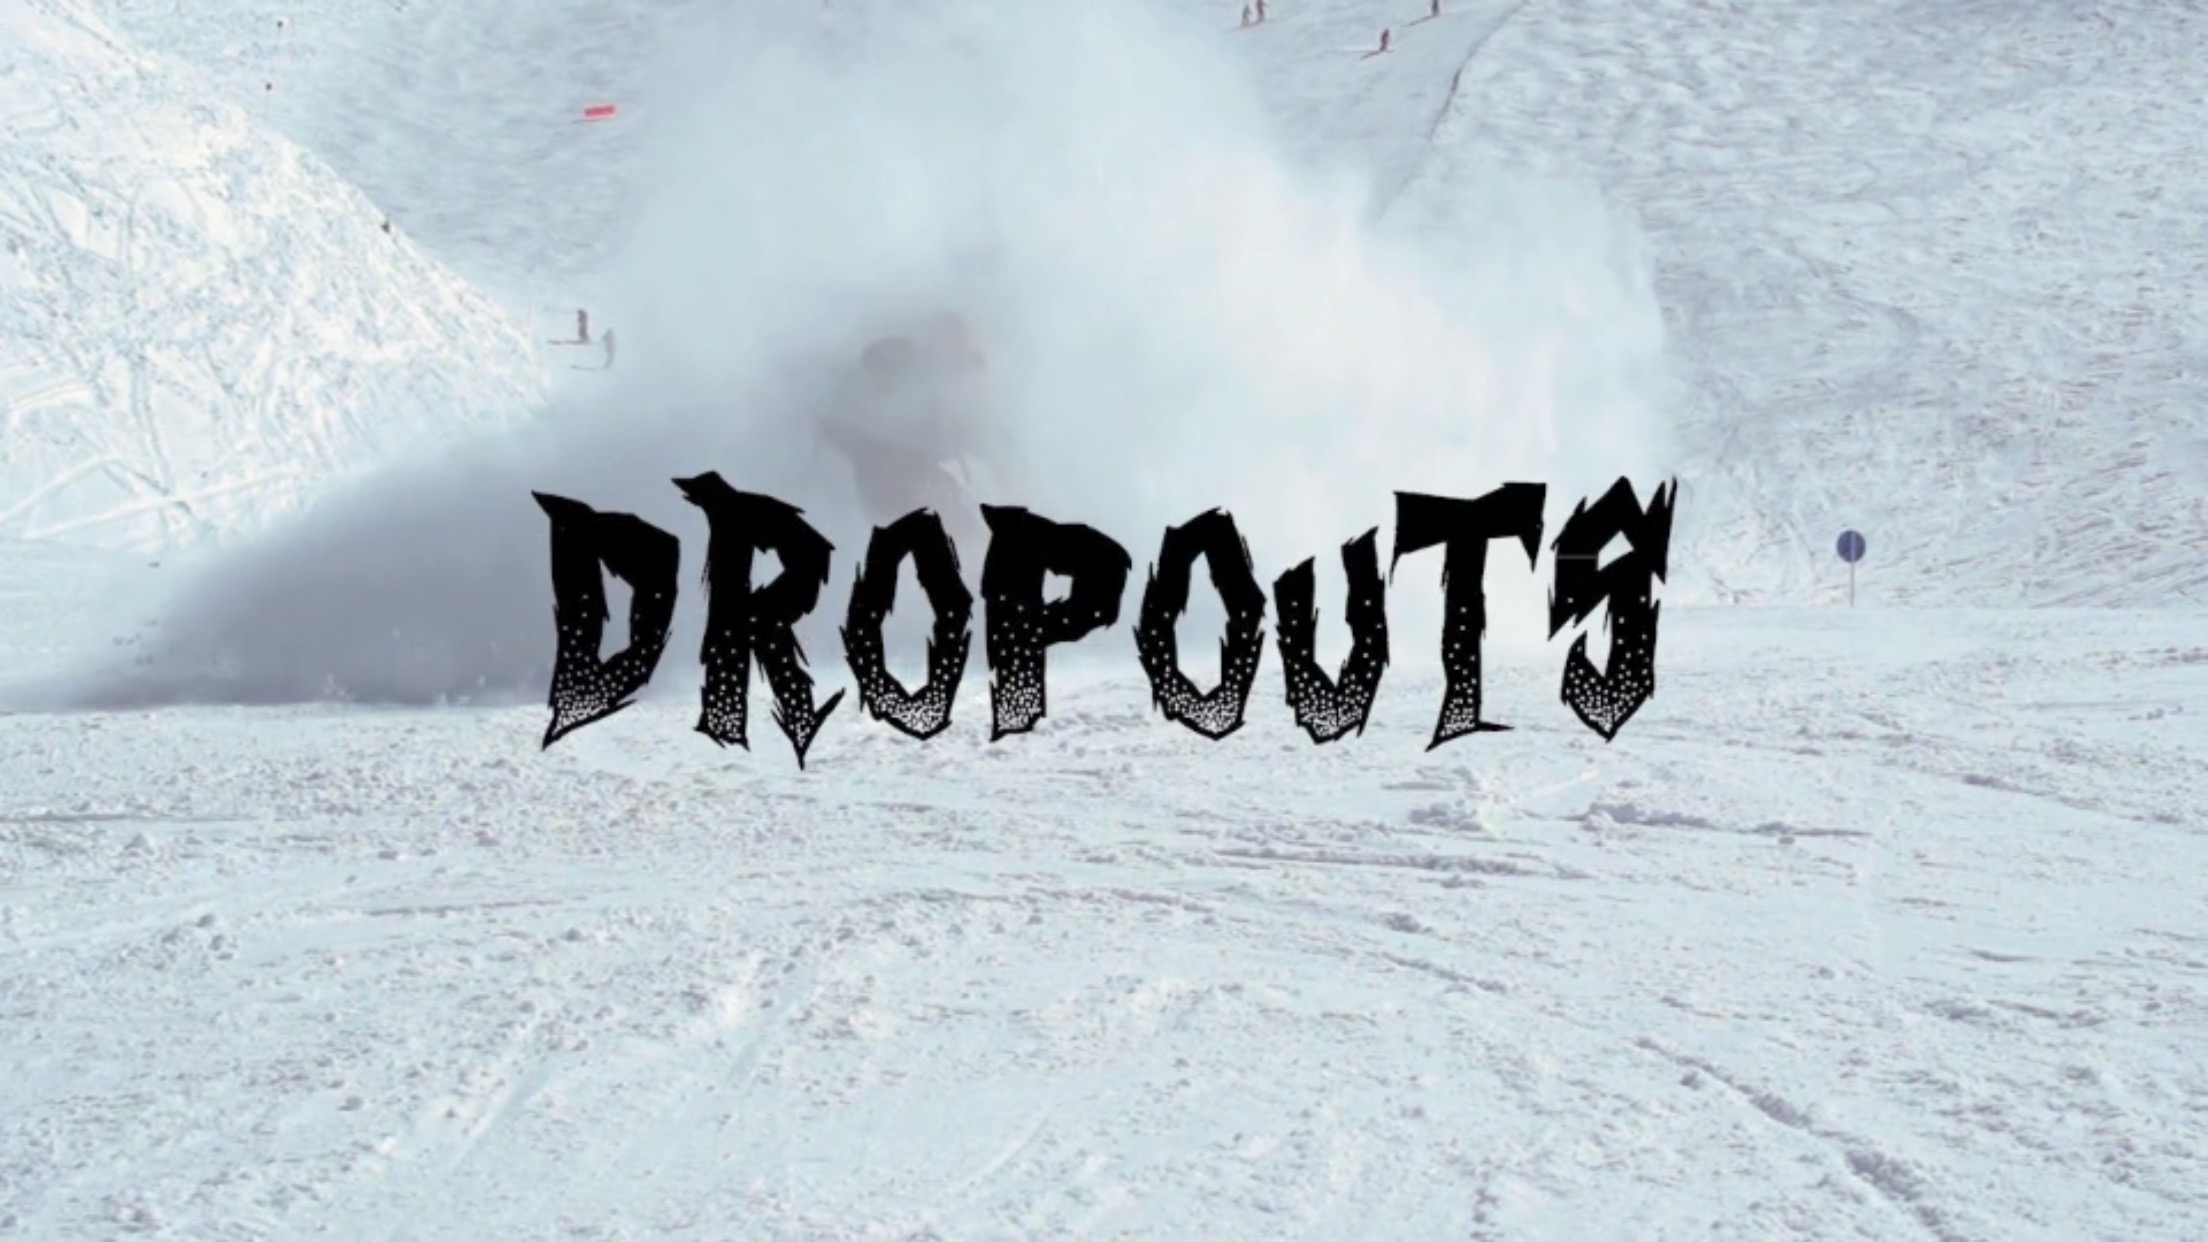 Dropouts is online and free to watch now!